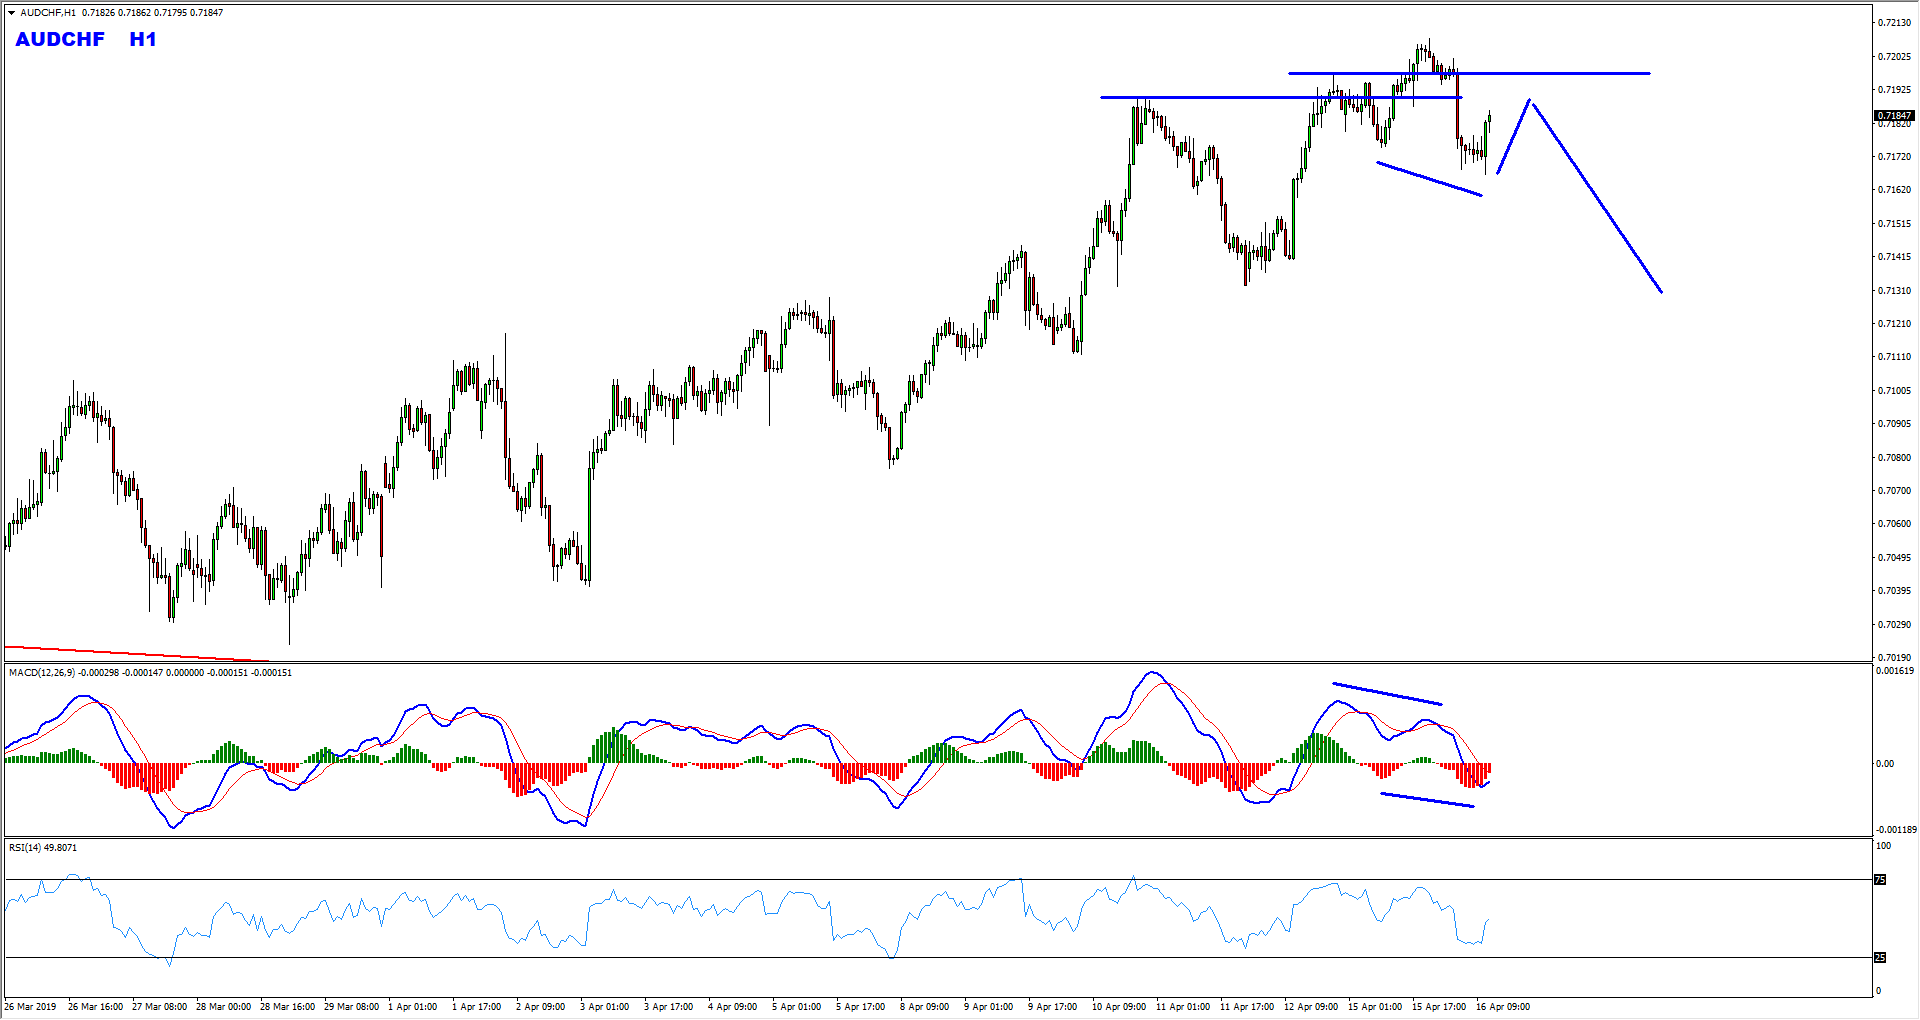 AUDCHF Short Term Bearish Opportunity Forming